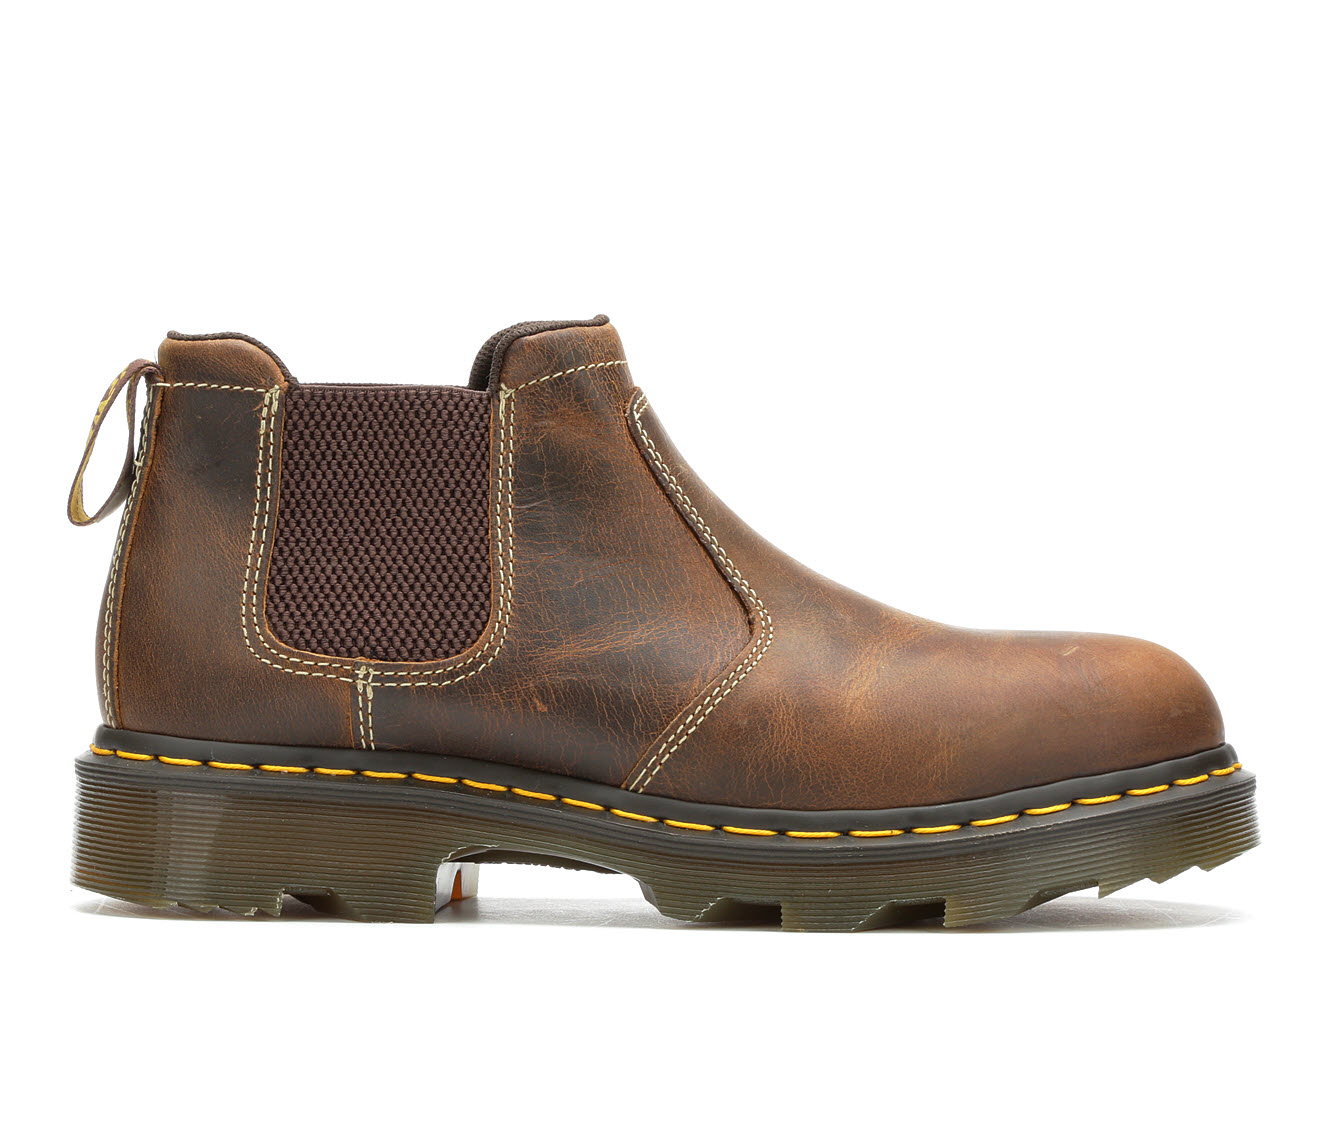 Dr. Martens Penly Men's Boots (Brown Leather)